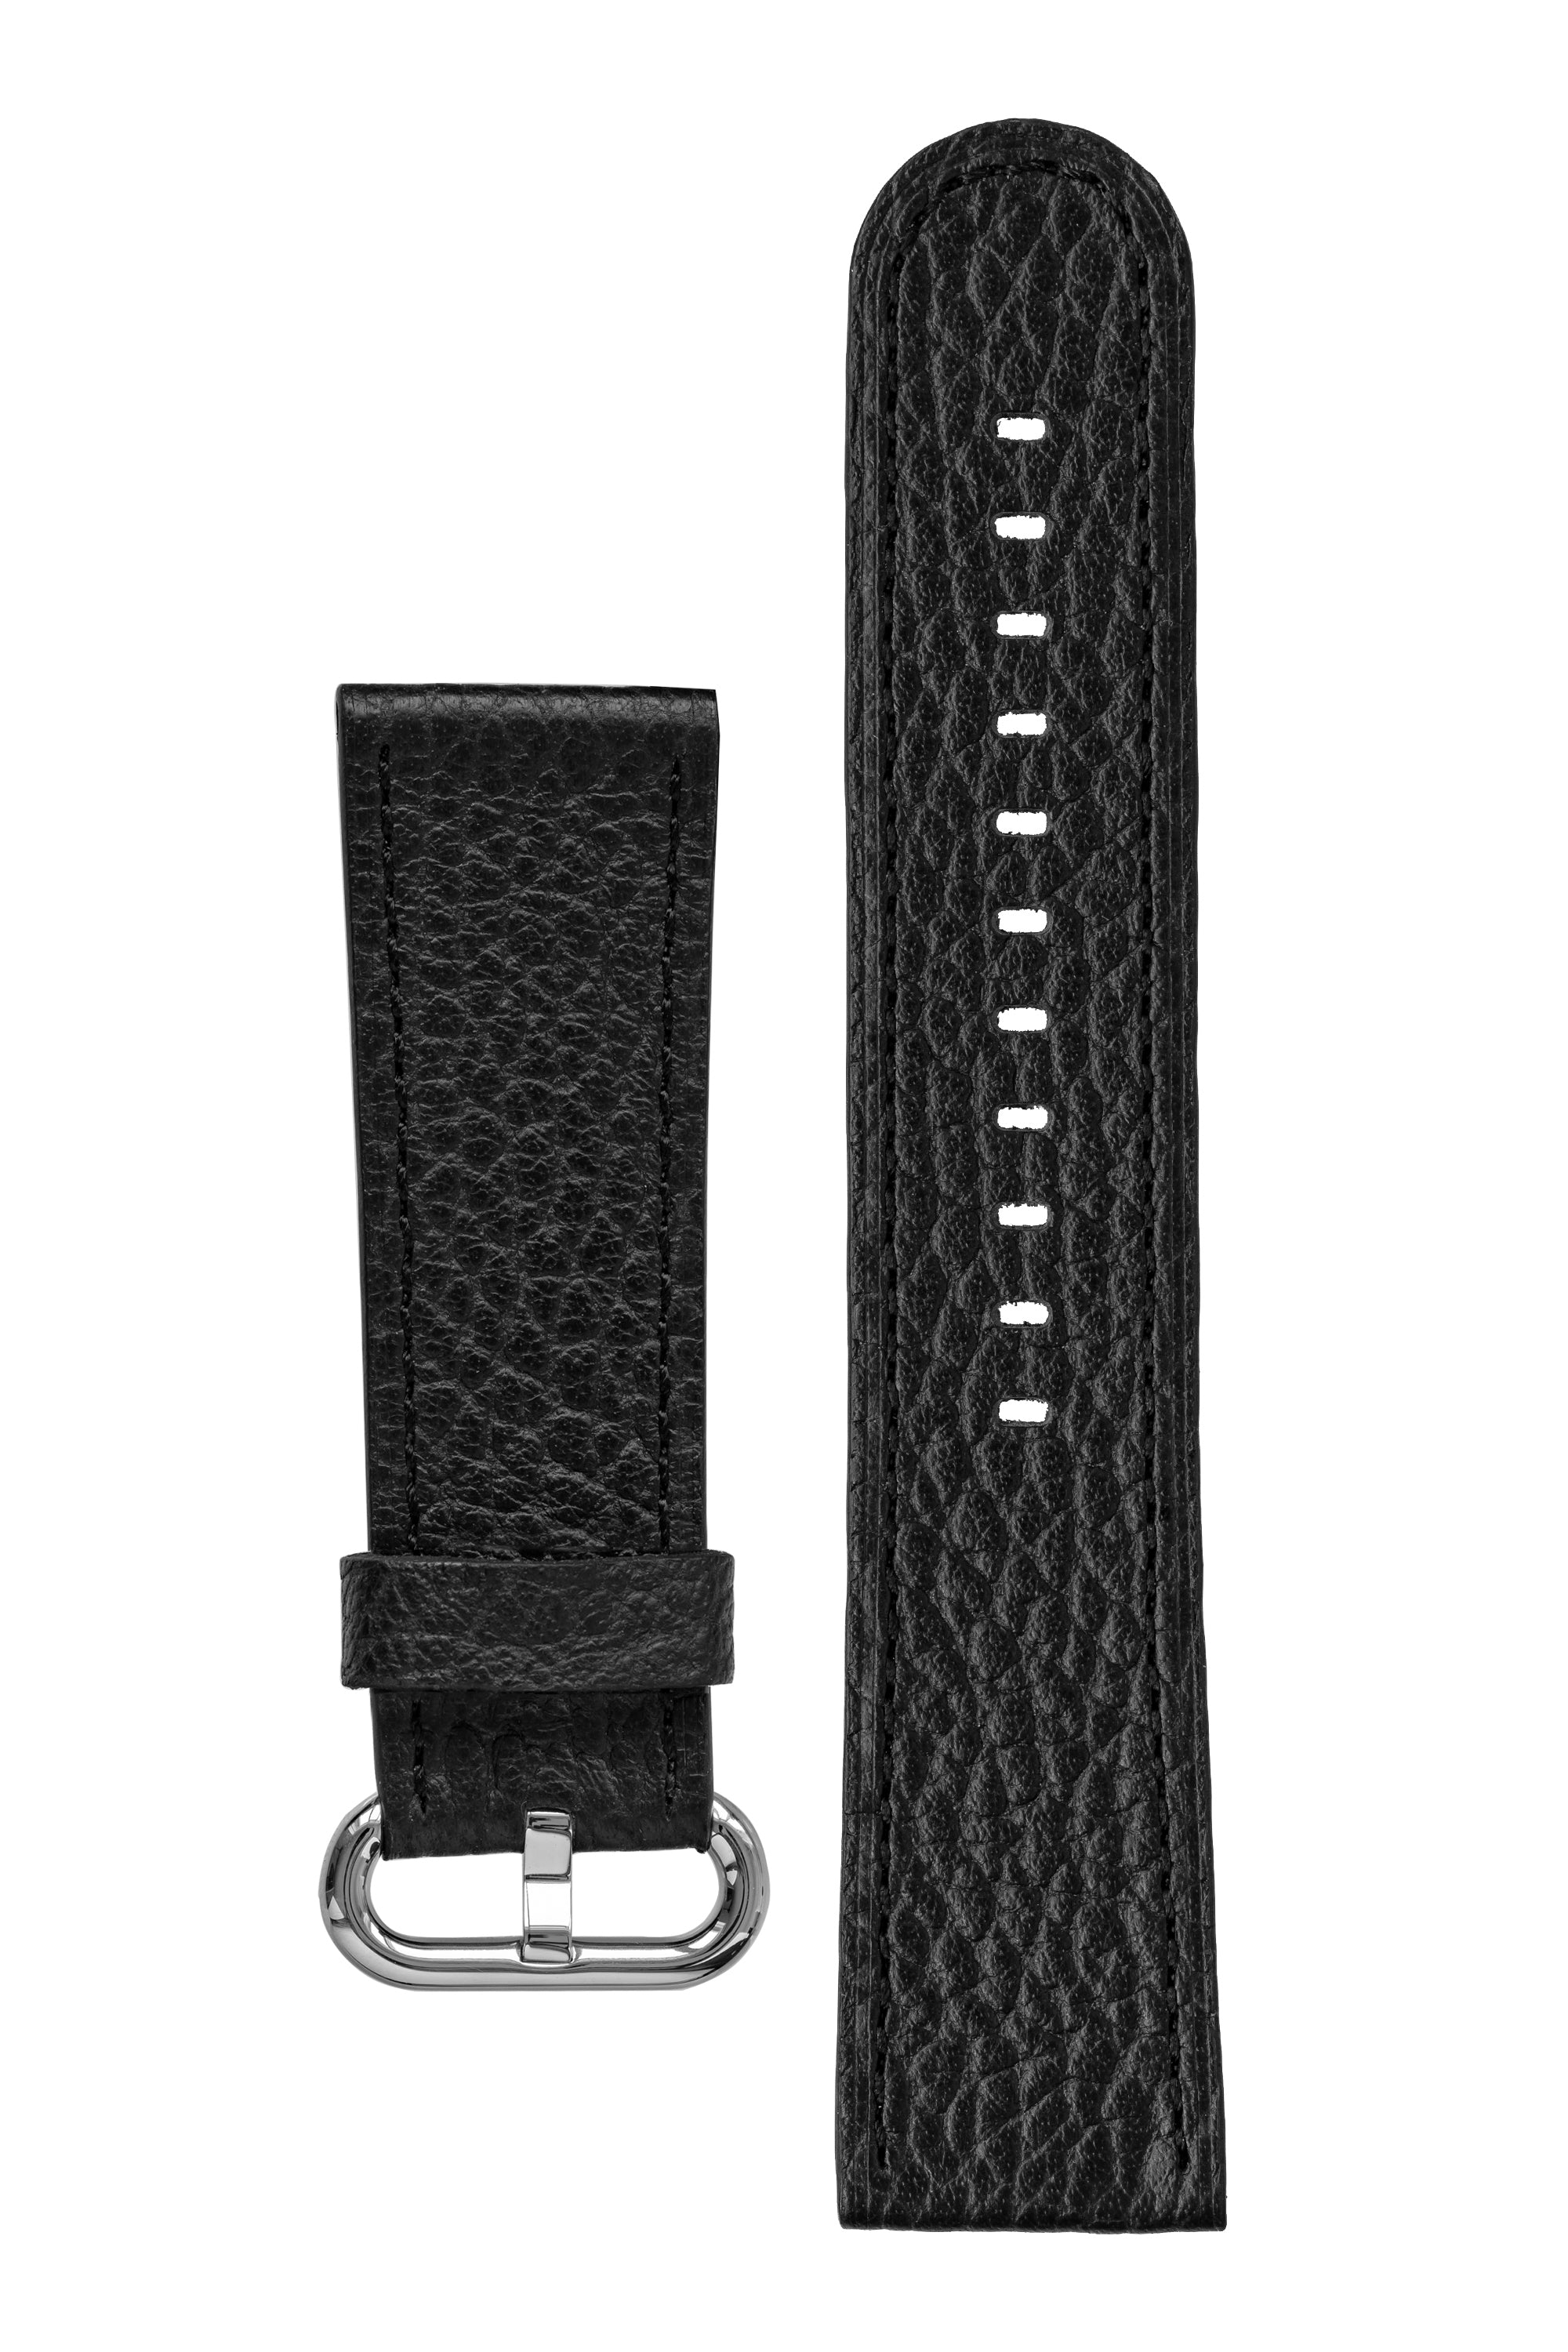 Rios1931 CONNECT Buffalo Leather Watch Strap for 42 / 44mm Apple Watch in BLACK